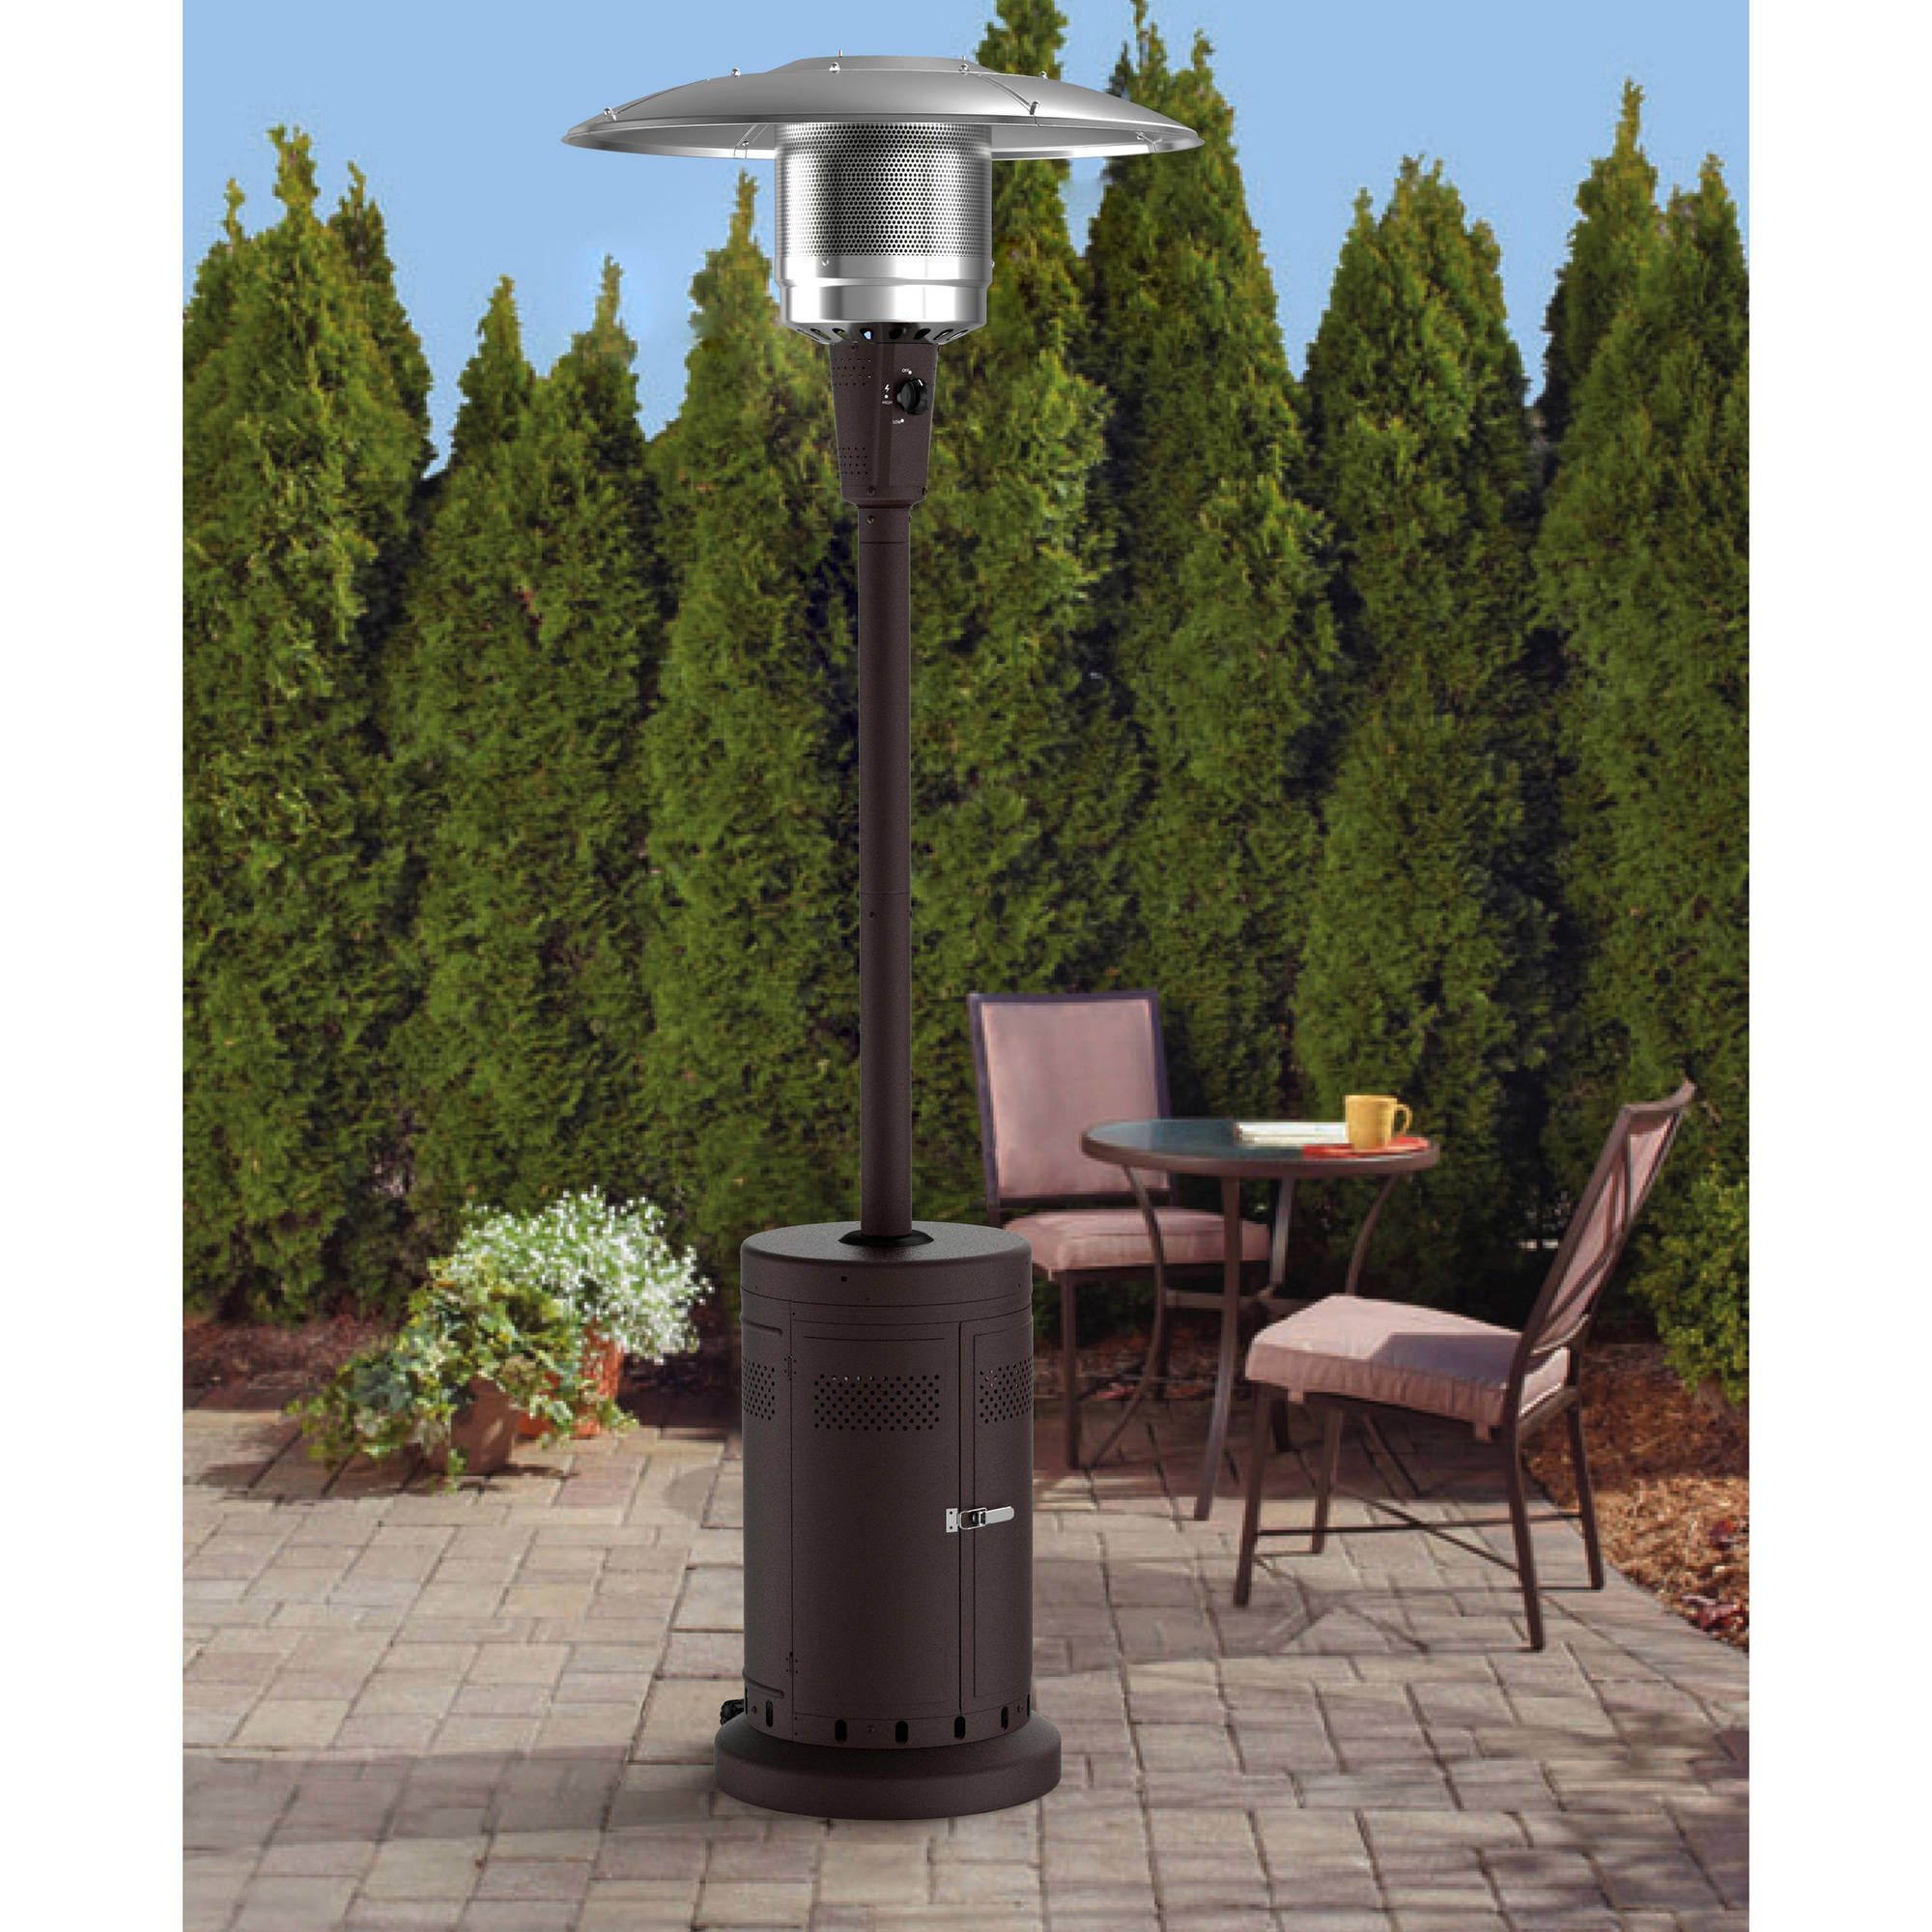 Mainstays Large Outdoor Patio Heater, Powder Coat Brown by CHANT KITCHEN EQUIPMENT HK LIMITED